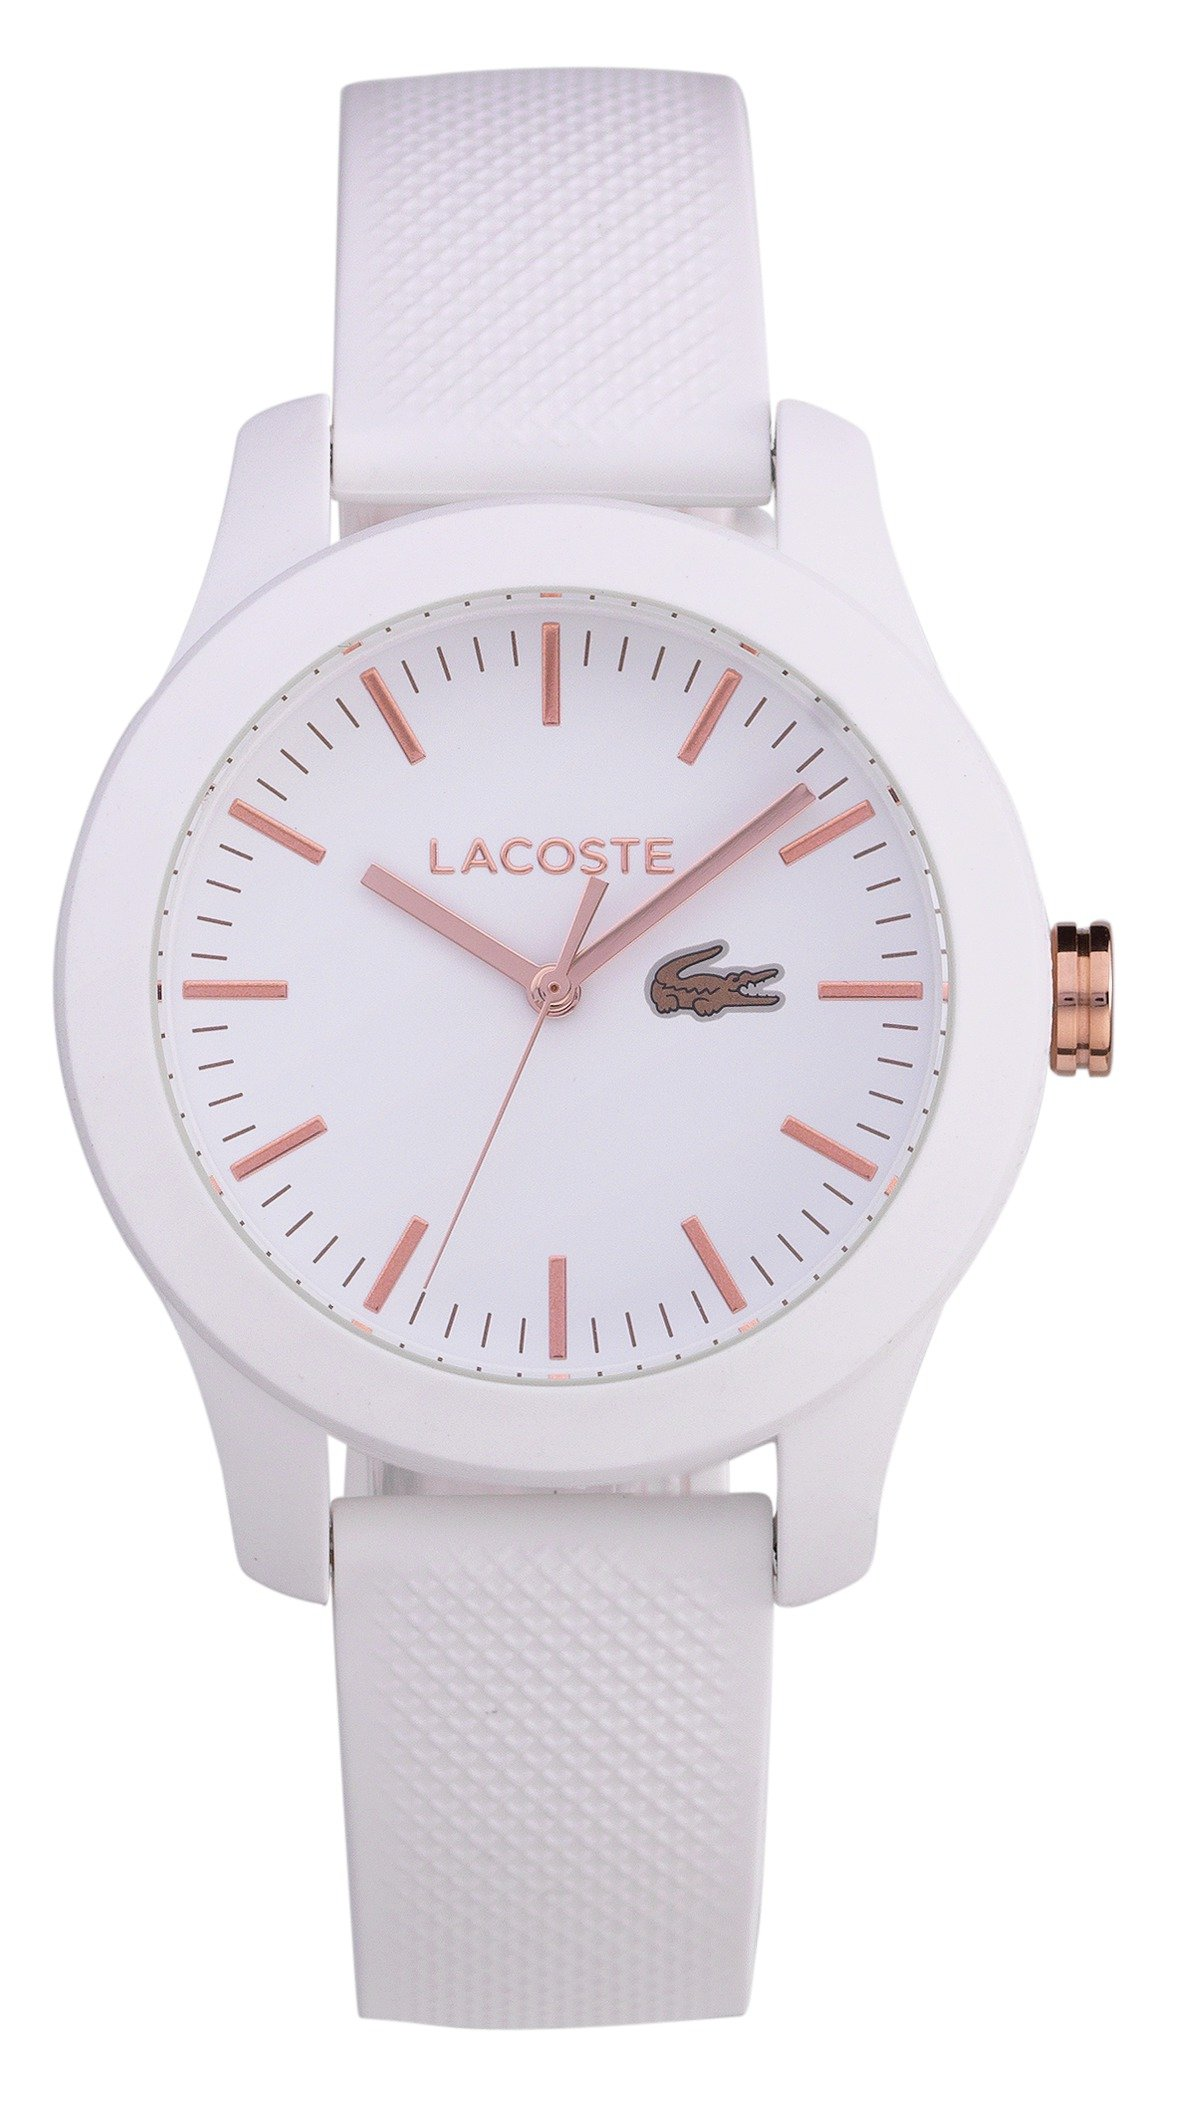 Lacoste Ladies' 12.12 White Rose Watch